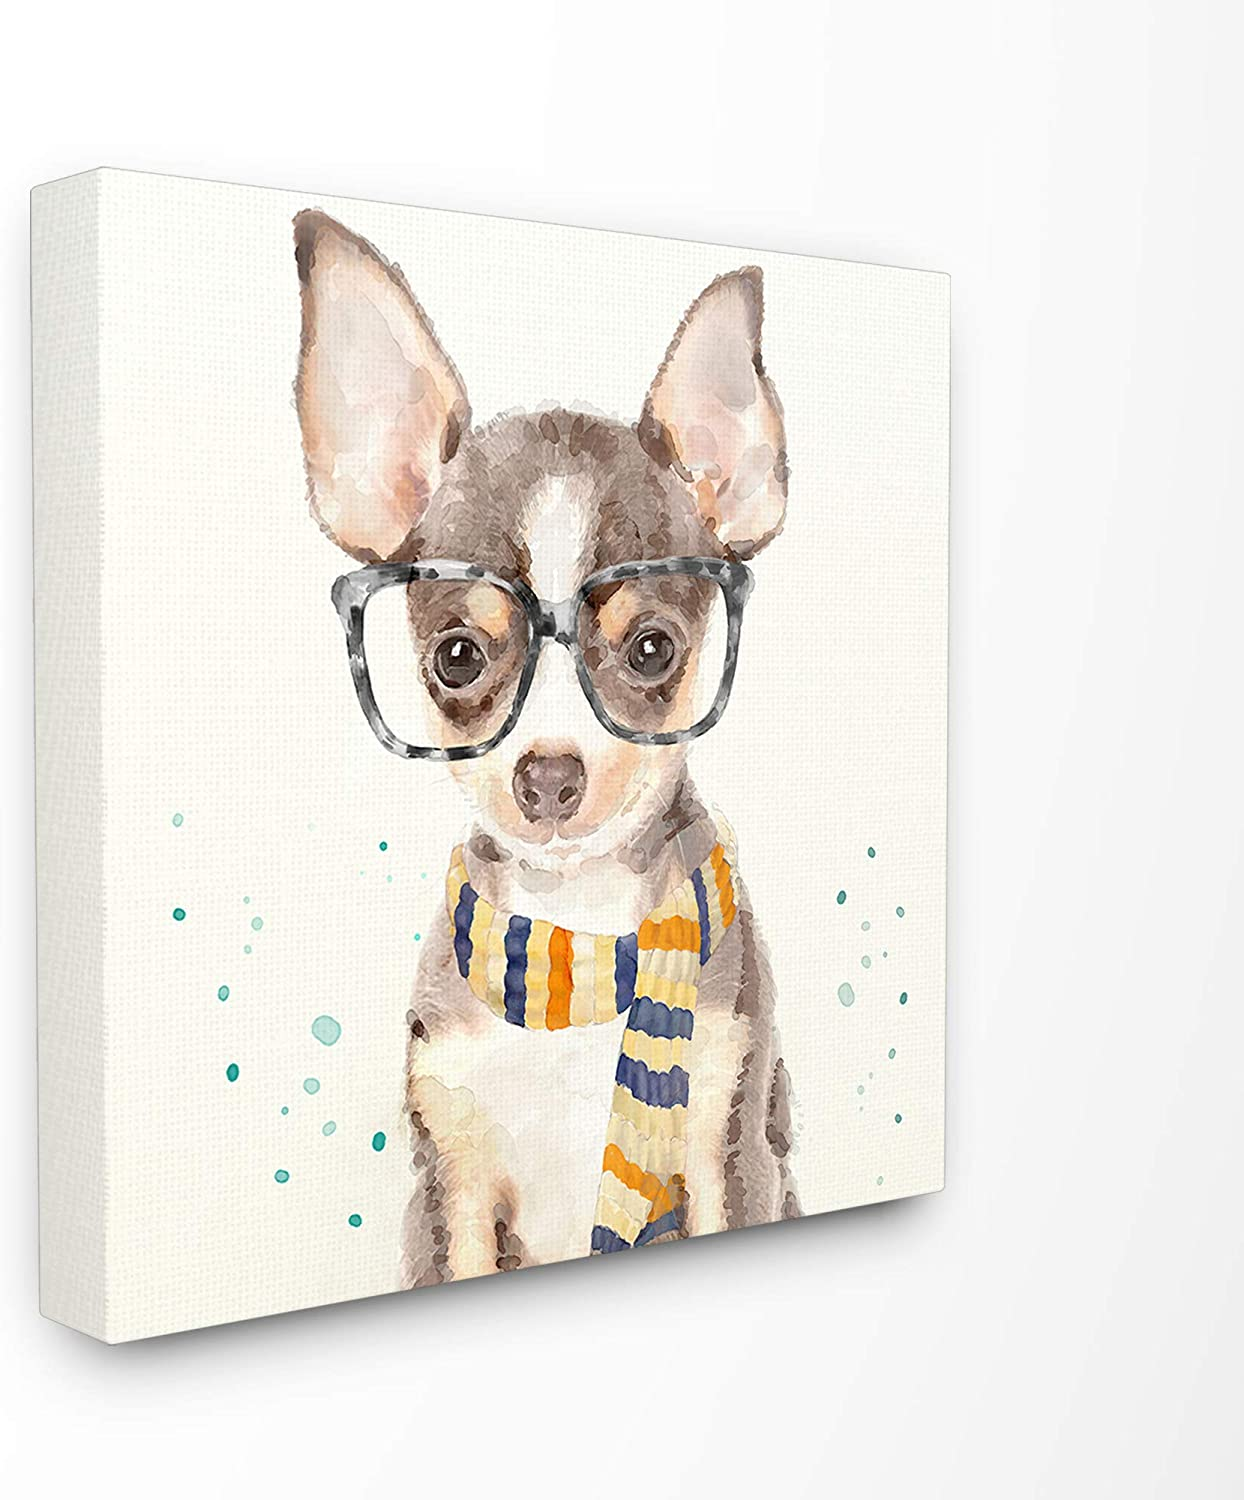 The Stupell Home Décor Collection Hipster Chihuahua Puppy with Glasses and Scarf Watercolor Stretched Canvas Wall Art, 17 x 17, Multi-Color